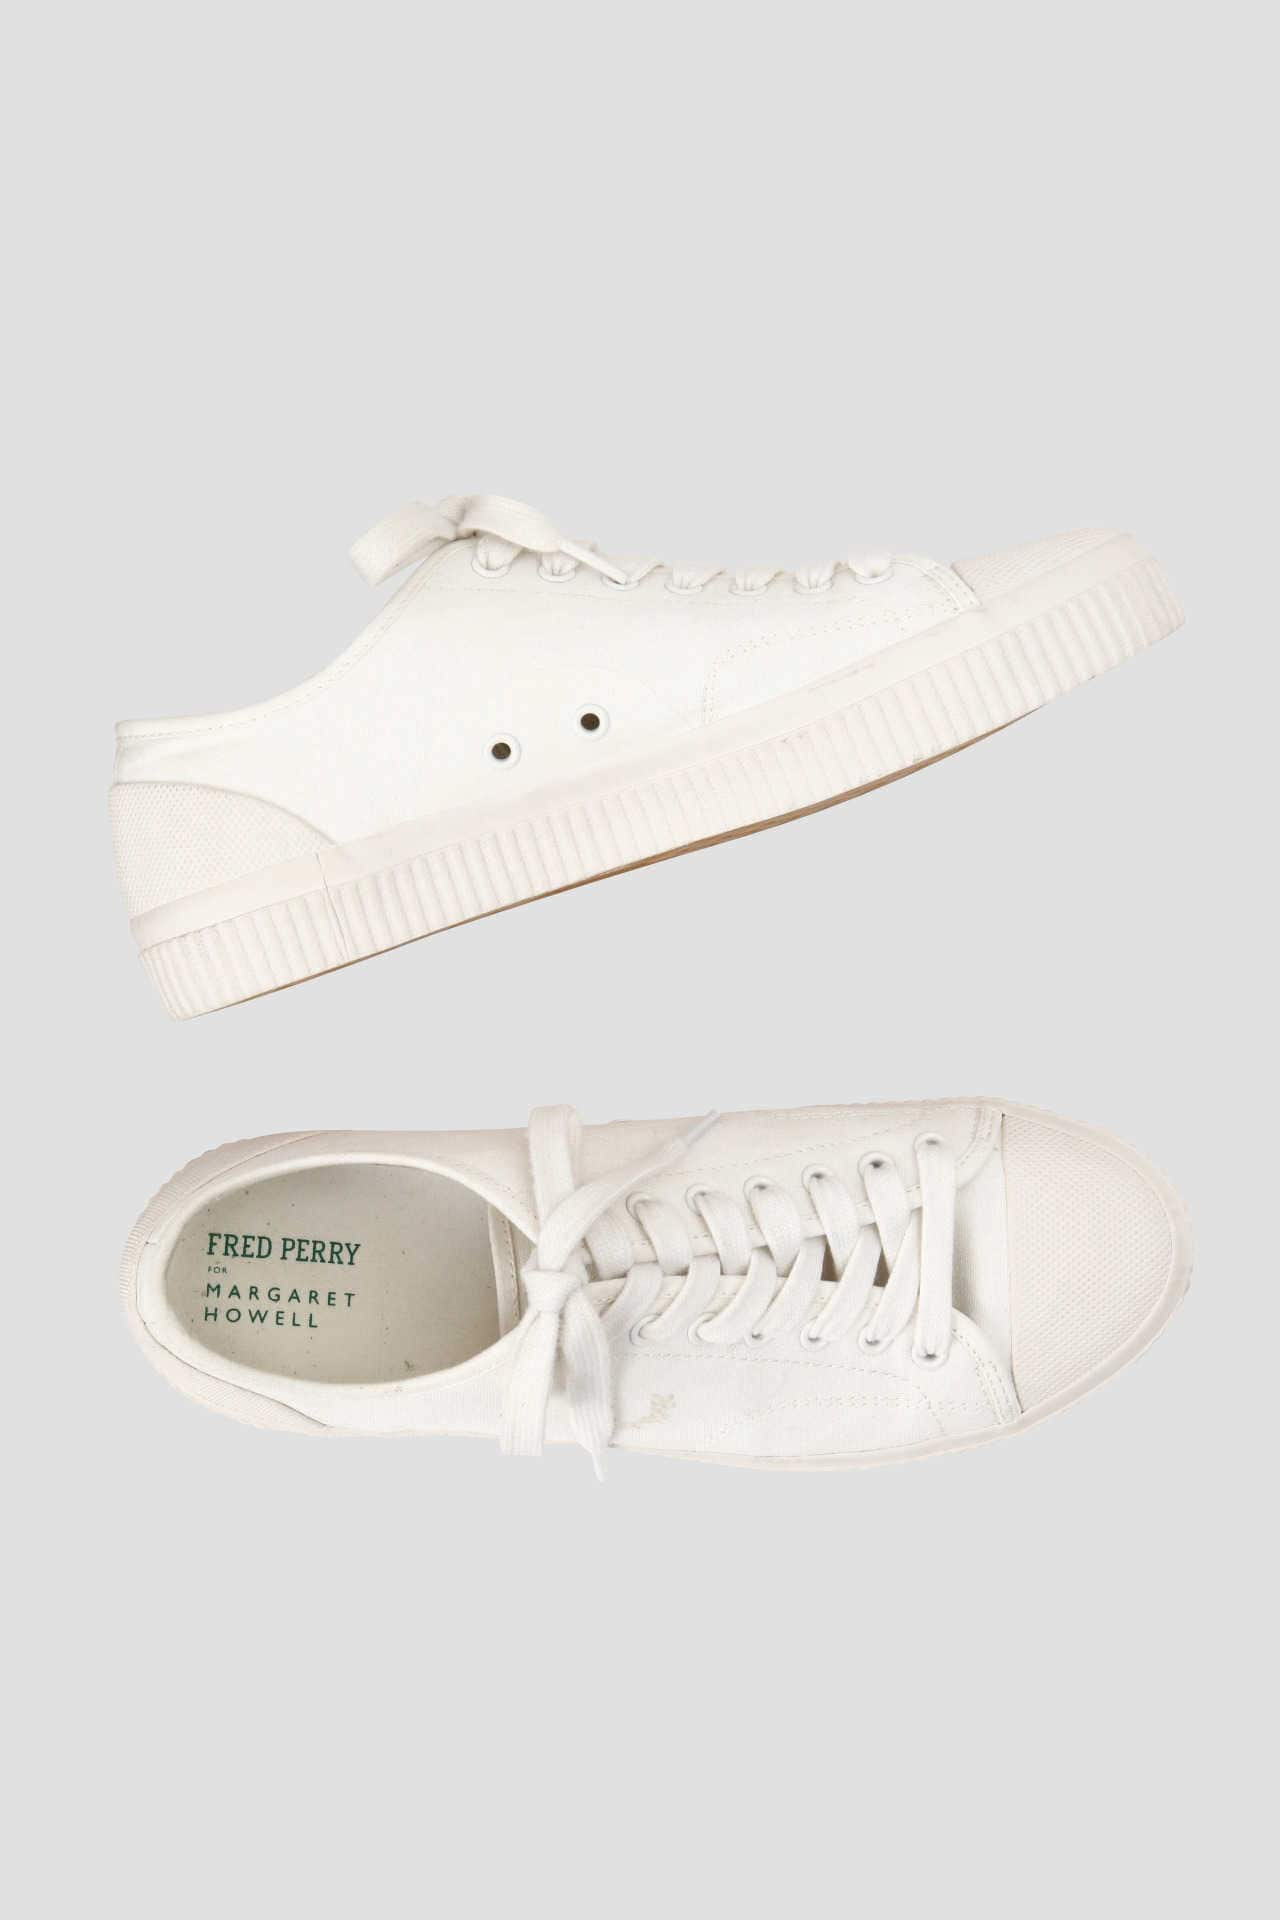 CANVAS RUBBER(FRED PERRY FOR MARGARET HOWELL)1